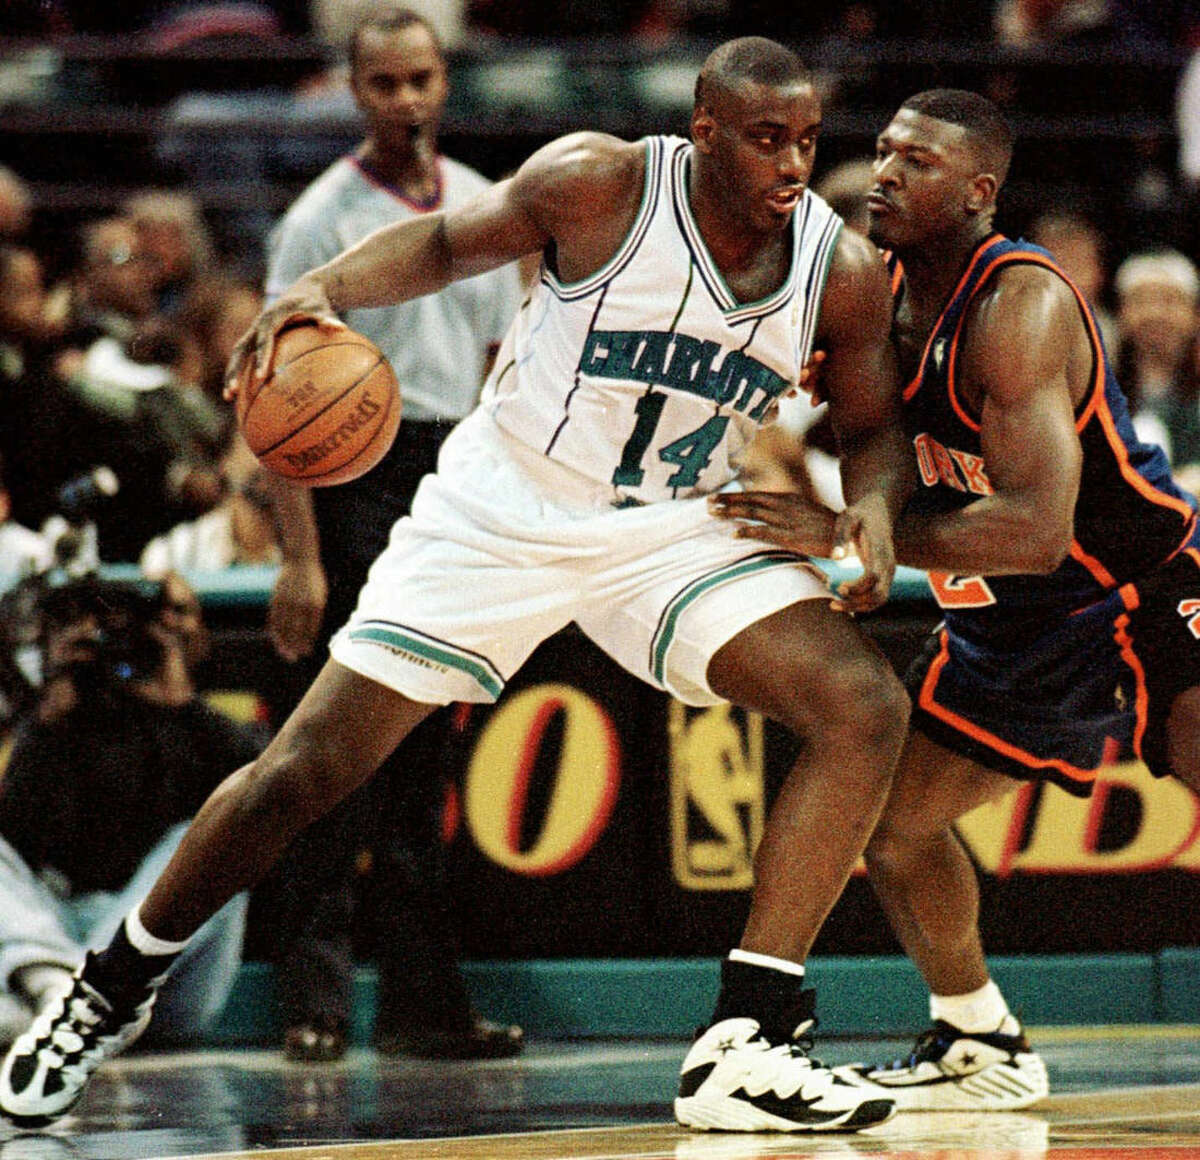 FILE - In this Nov. 20, 1996 file photo, Charlotte Hornets forward Anthony Mason, left, leans in on New York Knicks forward Larry Johnson during first quarter of an NBA basketball game in Charlotte, N.C. The New York Knicks spokesman Jonathan Supranowitz confirmed Saturday, Feb. 28, 2015 that Mason, a rugged power forward who was a defensive force for several NBA teams in the 1990s, has died. He was 48. (AP Photo/Peter A. Harris)